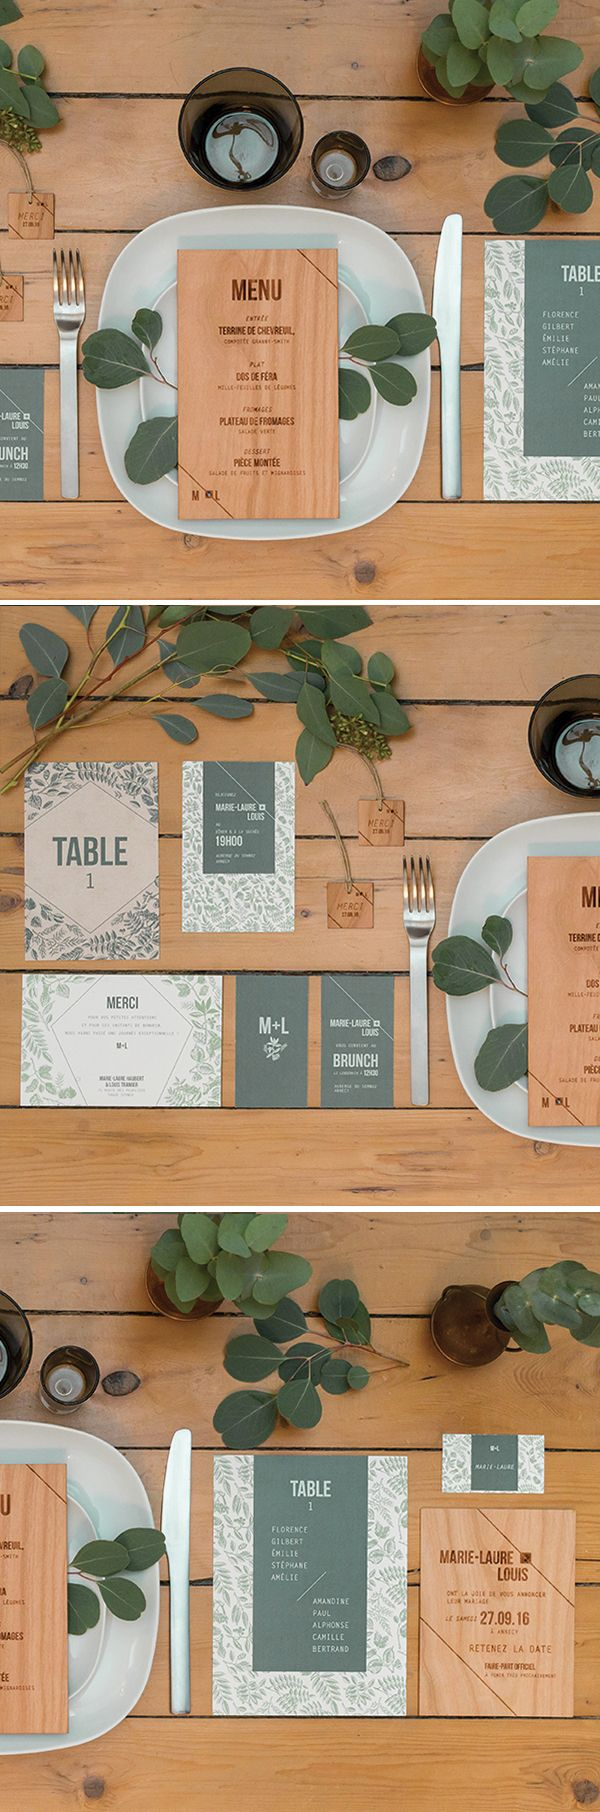 mariage wood folk | wedding invitation | stationery | papeterie mariage | mariage rustique | wedding kinfolk | invitation wood | celadon | vegetal | nature